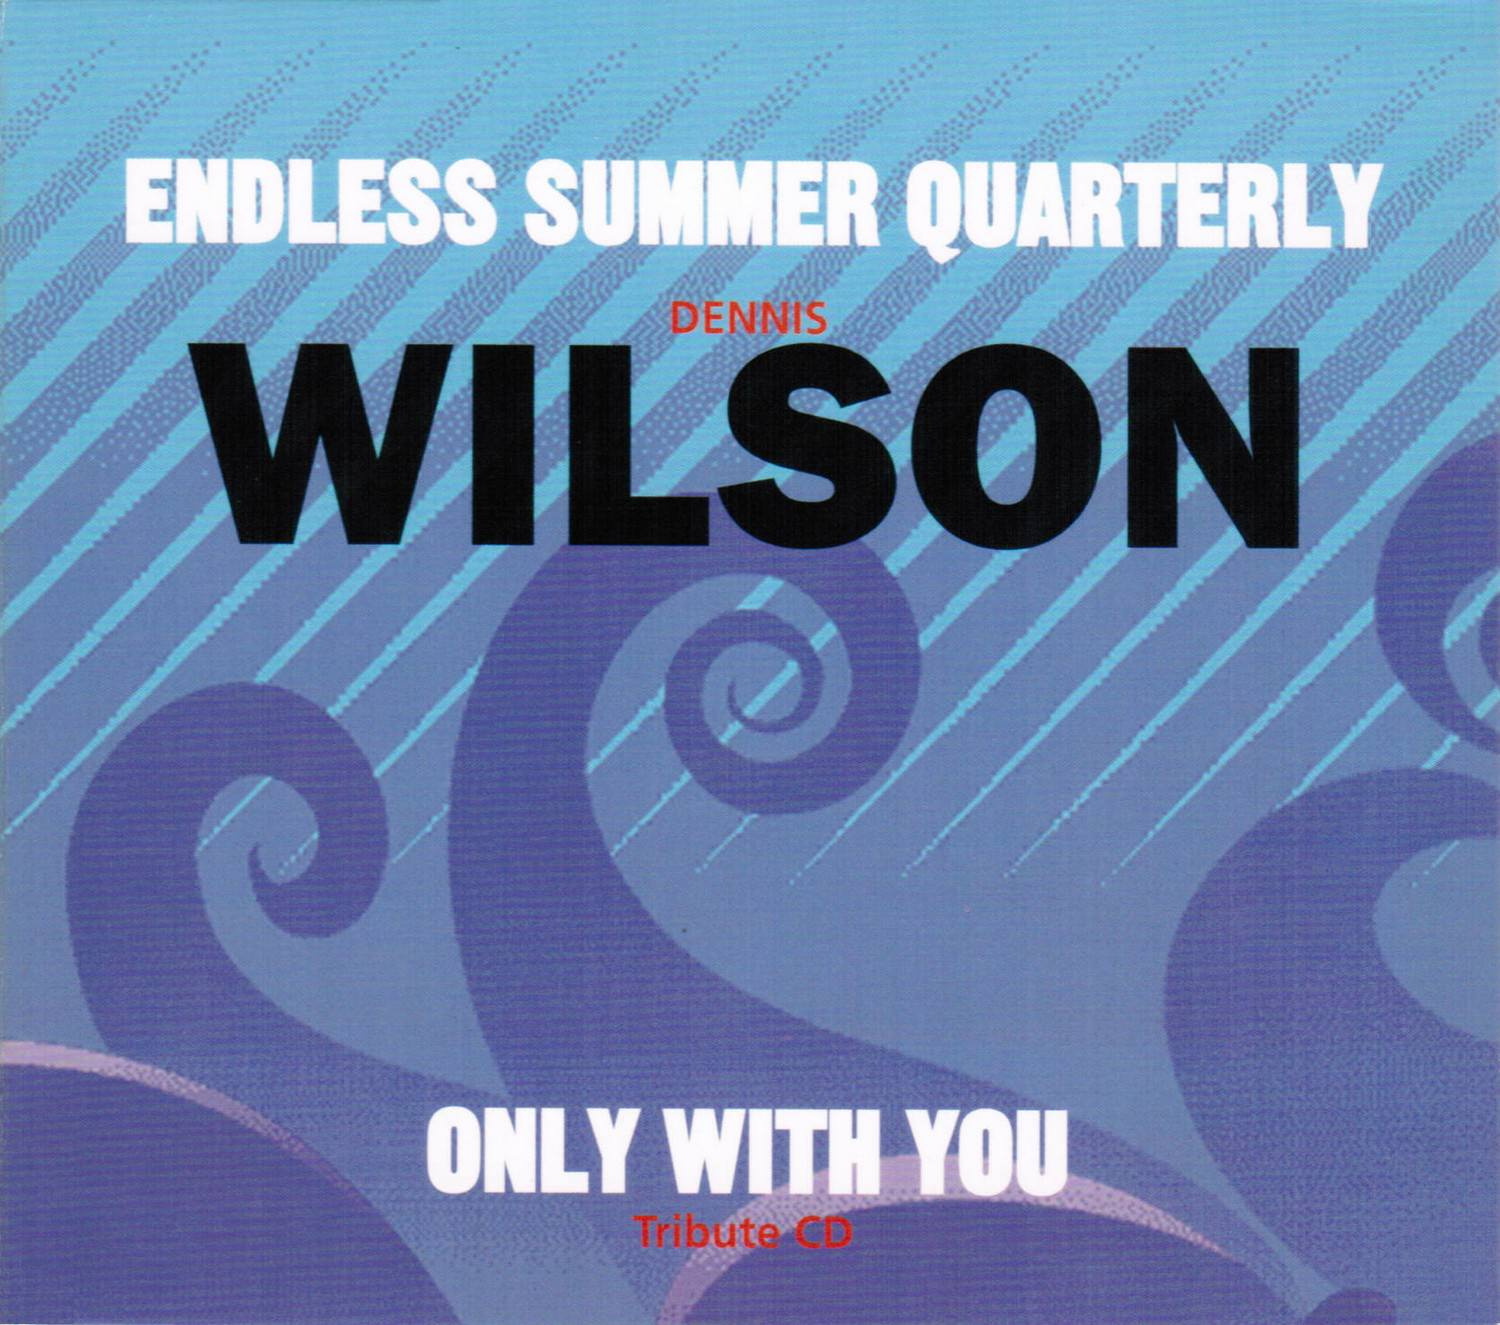 Only With You - Tribute CD cover